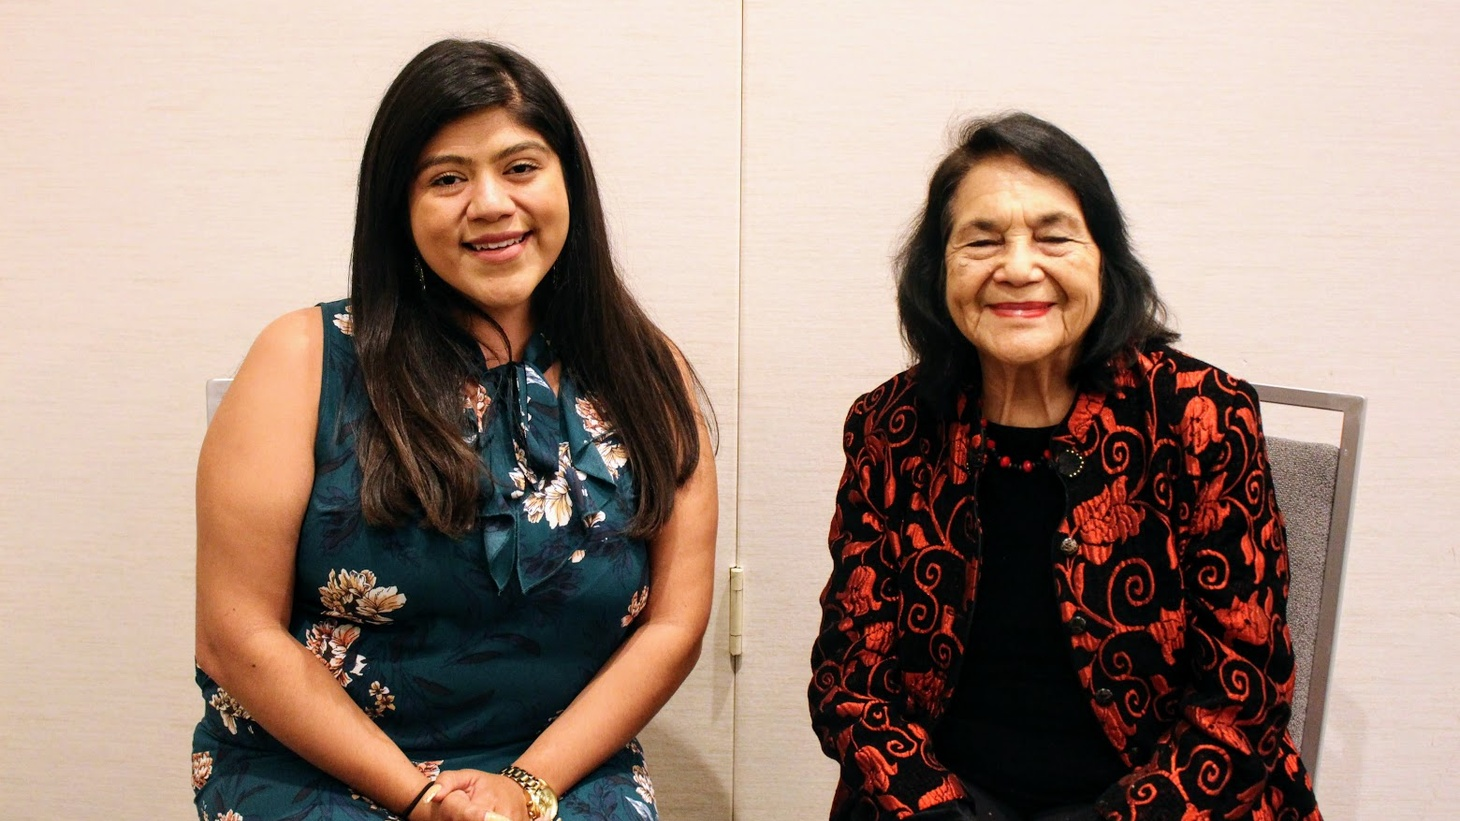 Dolores Huerta (right) with Eunice Gonzalez (left), who grew up in Santa Maria where her parents worked in the strawberry fields.